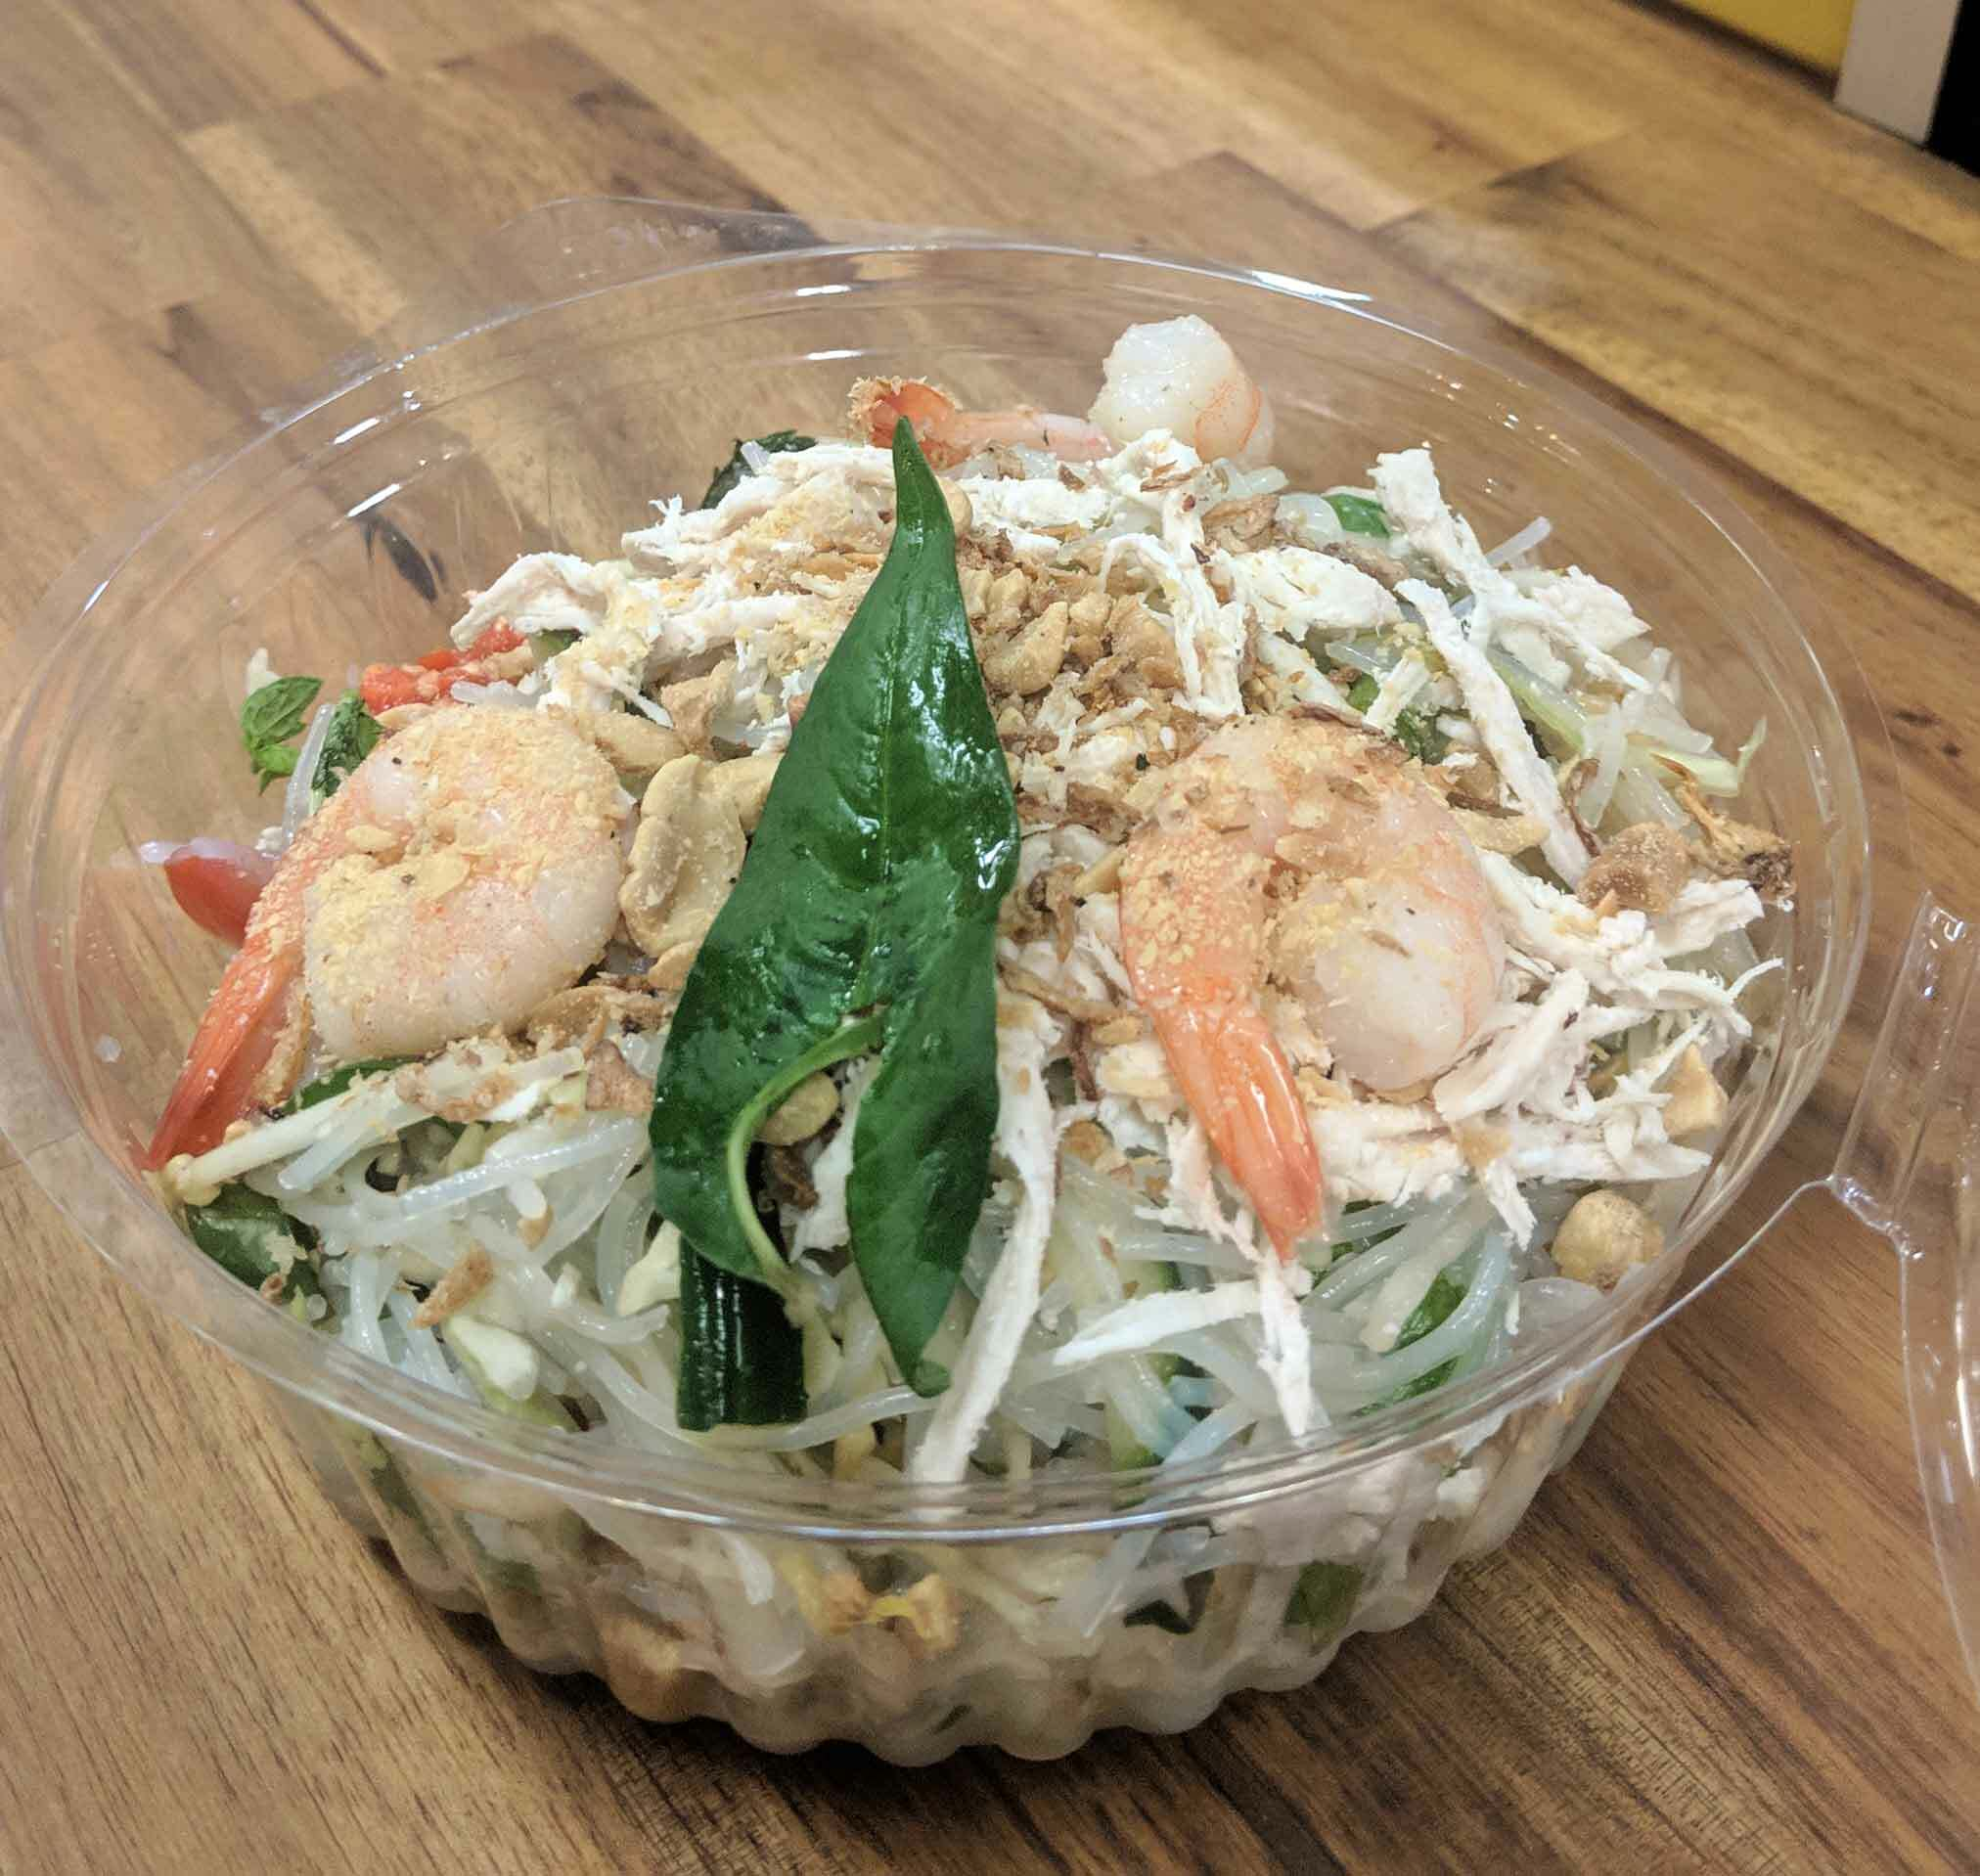 Khmer Kitchen: What's The Best Street Food At The Adelaide Central Market